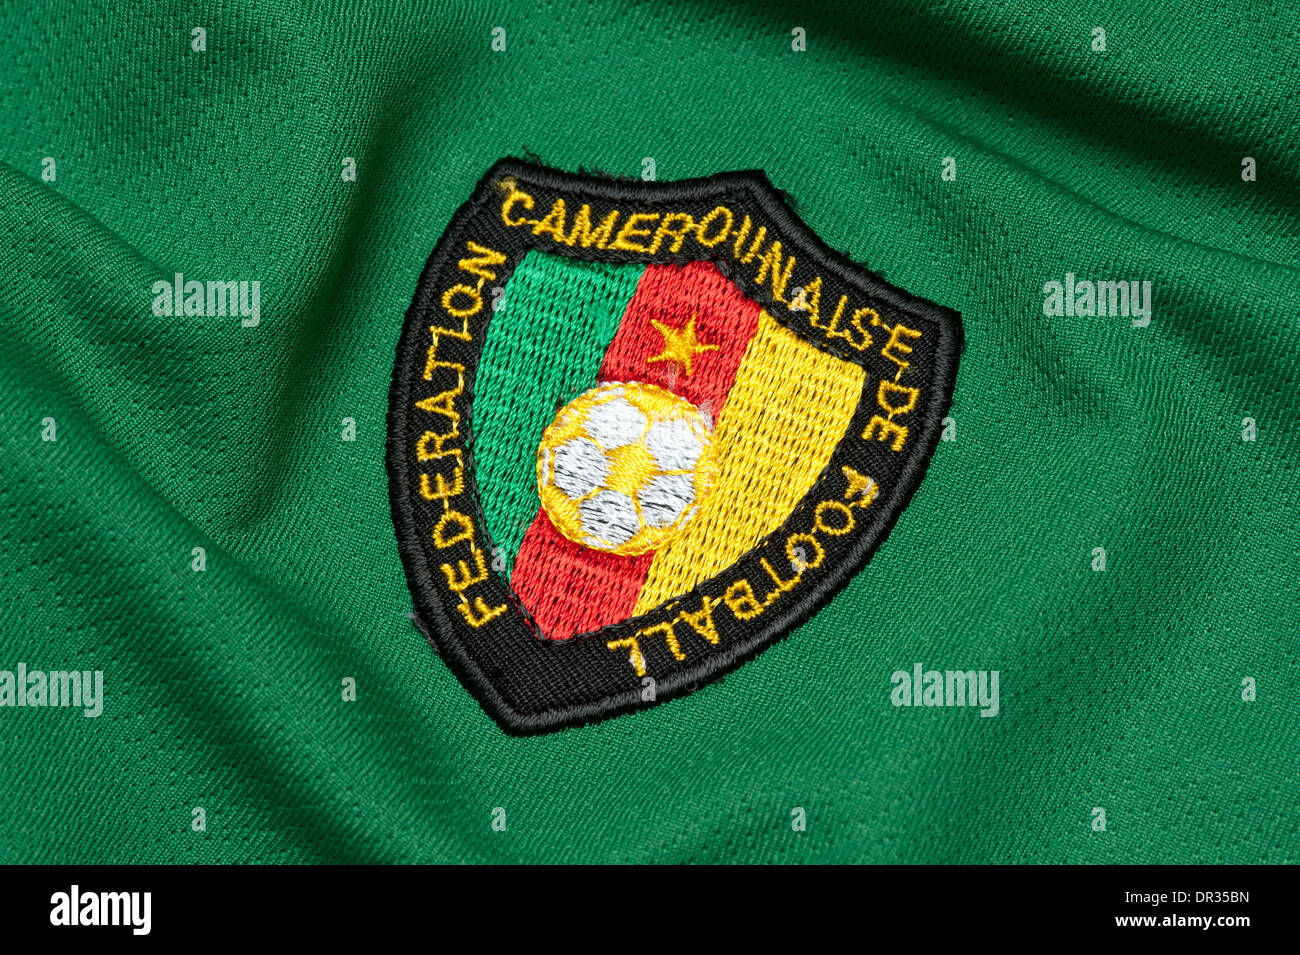 Close up of the Cameroon national team football kit - Stock Image